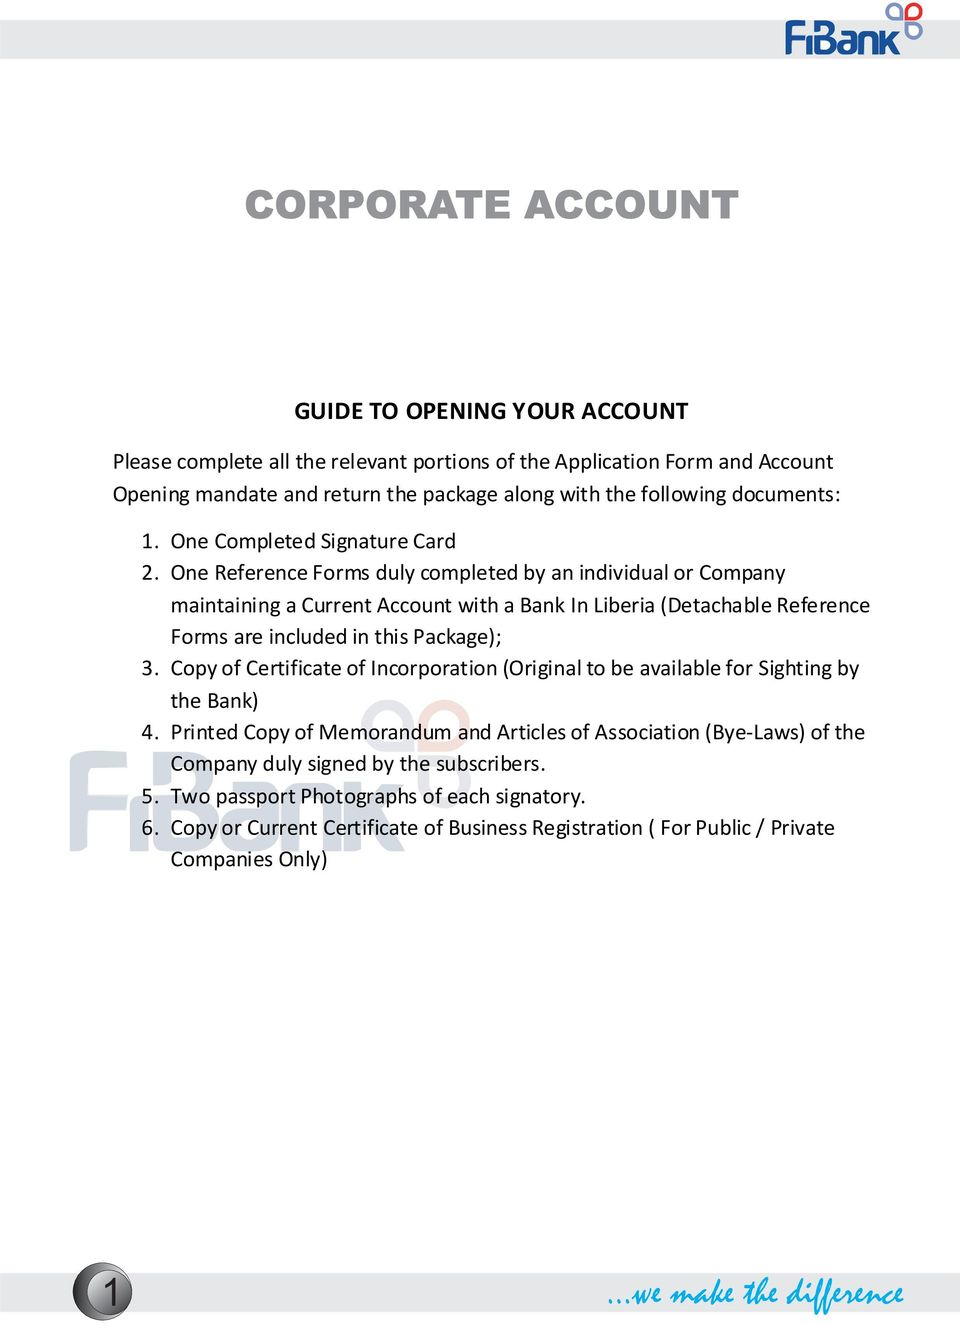 One Reference Forms duly completed by an individual or Company maintaining a Current Account with a Bank In Liberia (Detachable Reference Forms are included in this Package); 3.